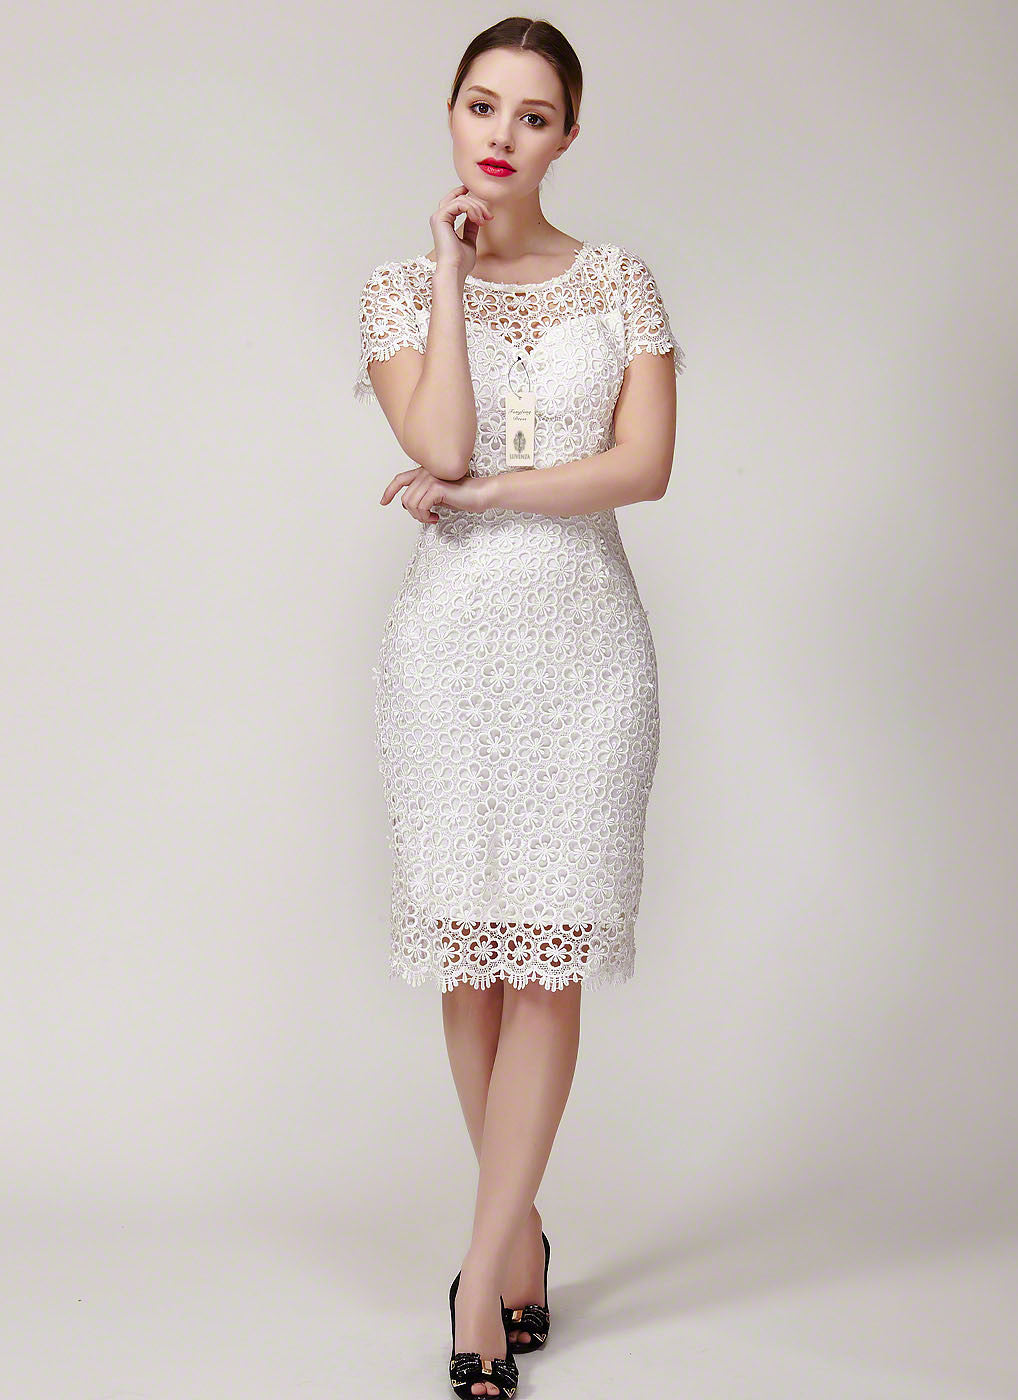 Open Back Vintage Style Floral Lace Wedding Dress  Retro Backless Floral  Lace Dress with Scallop f69ae3e0c